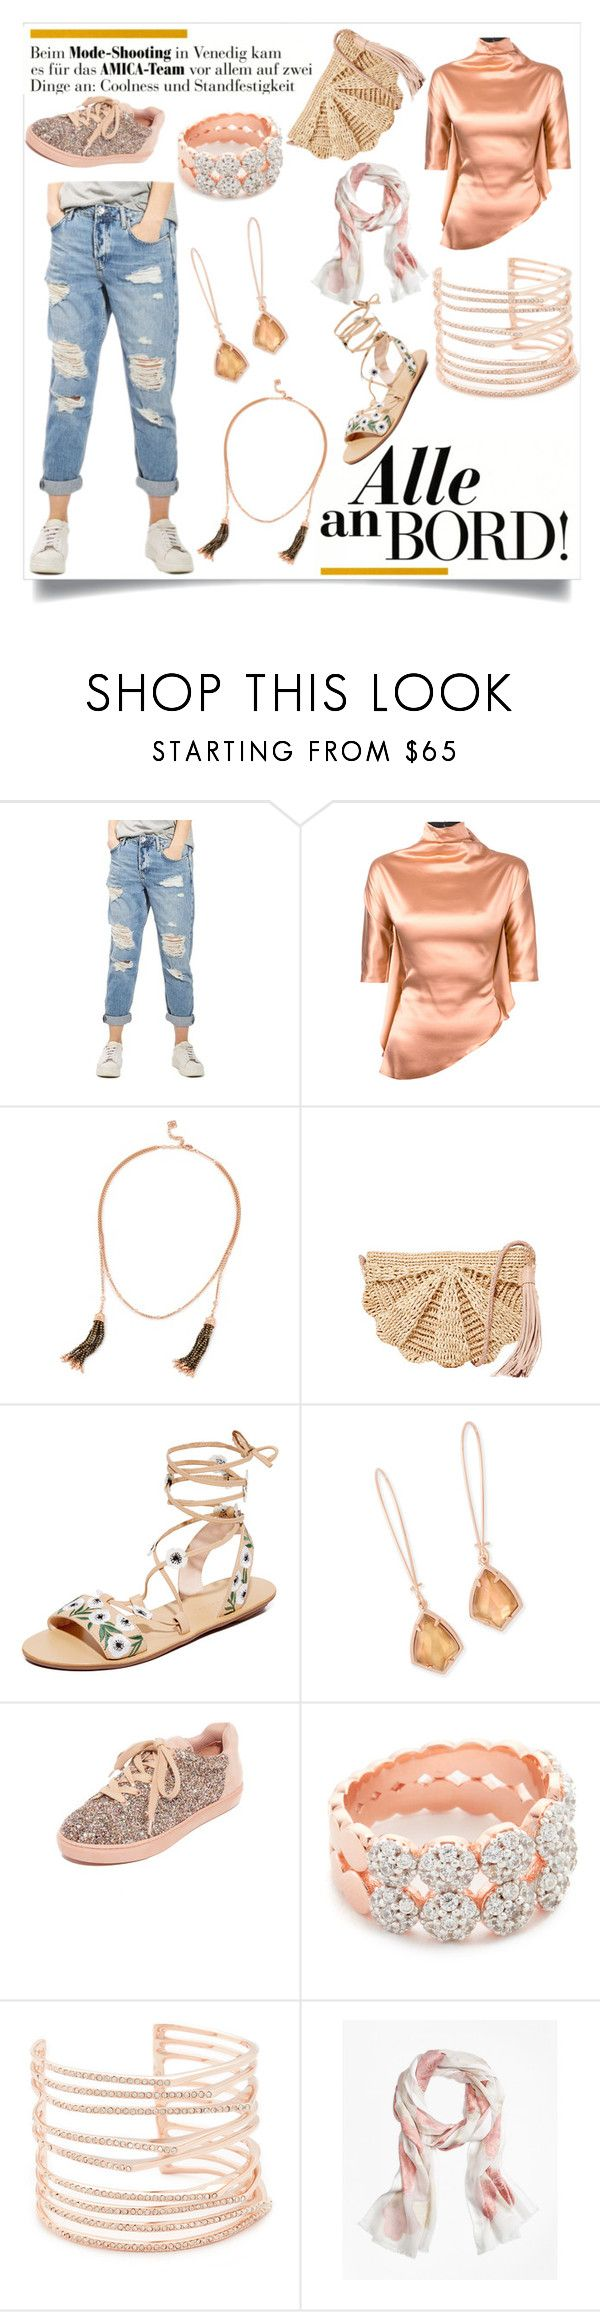 """Illumination entertainment"" by emmamegan-5678 ❤ liked on Polyvore featuring Topshop, Paula Knorr, Kendra Scott, Mar y Sol, Loeffler Randall, The Fix, Bronzallure, Alexis Bittar, Brooks Brothers and modern"